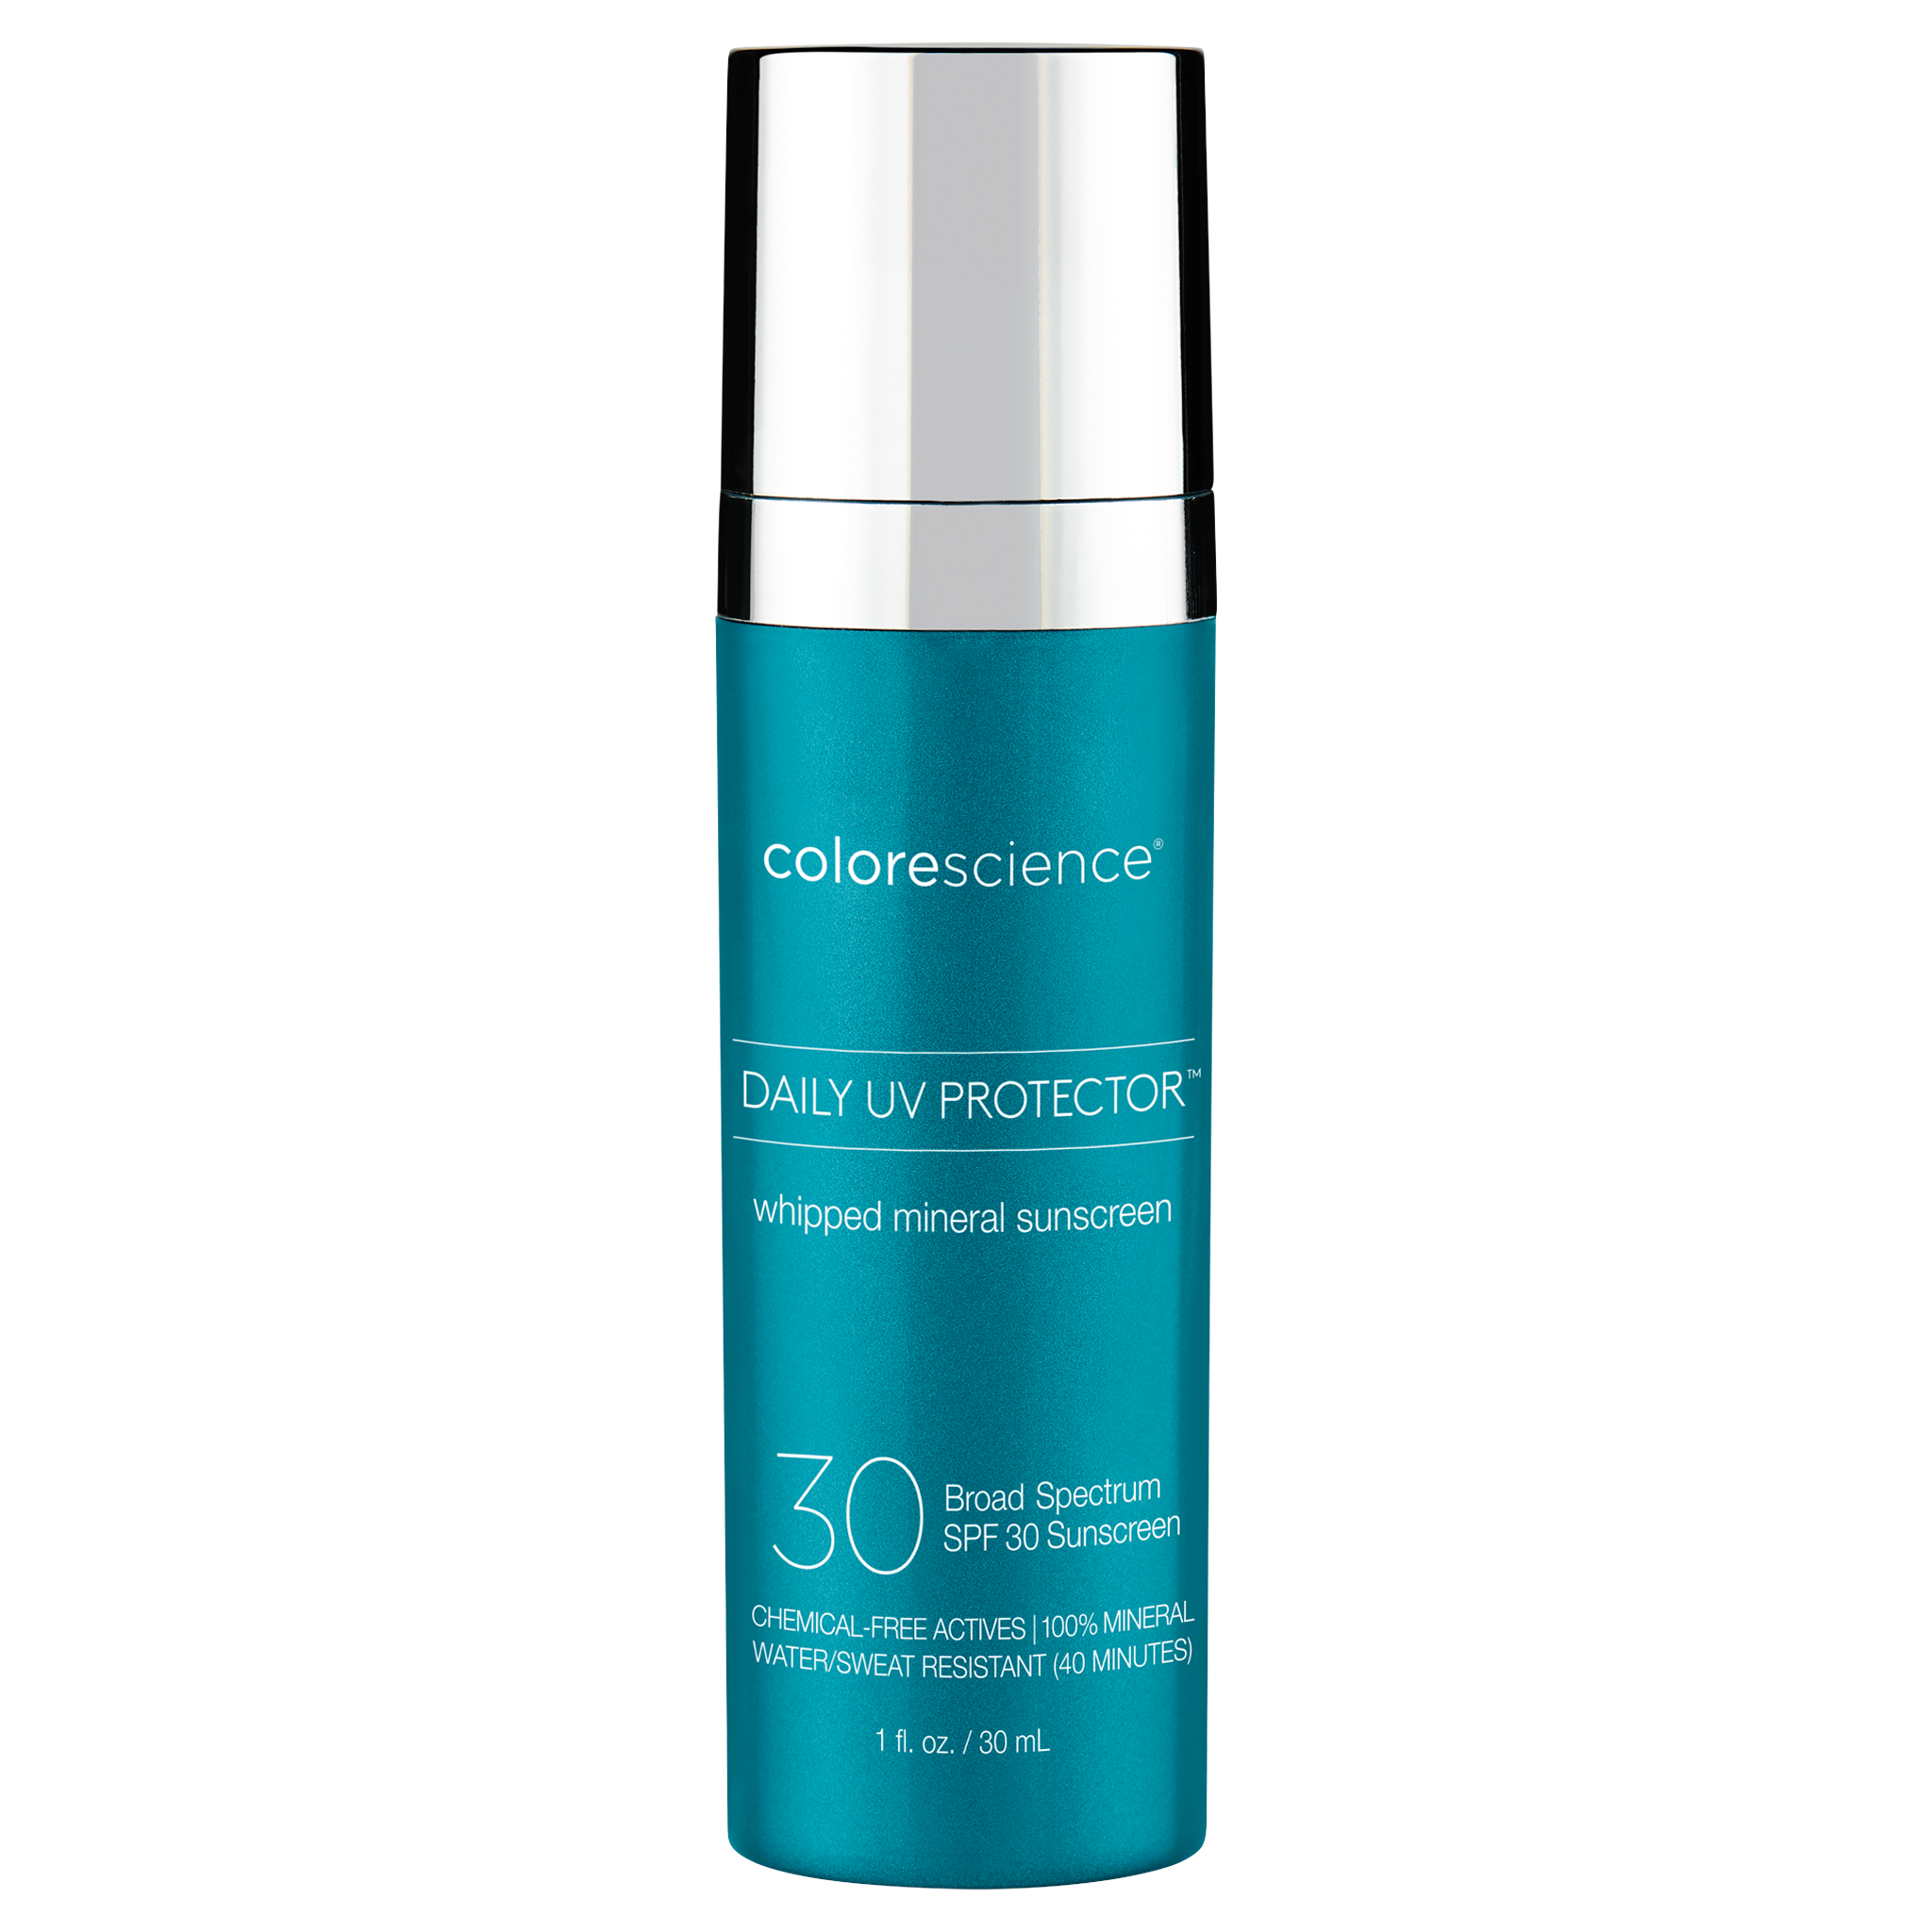 Daily UV Protector SPF 30 Whipped Mineral Sunscreen || all